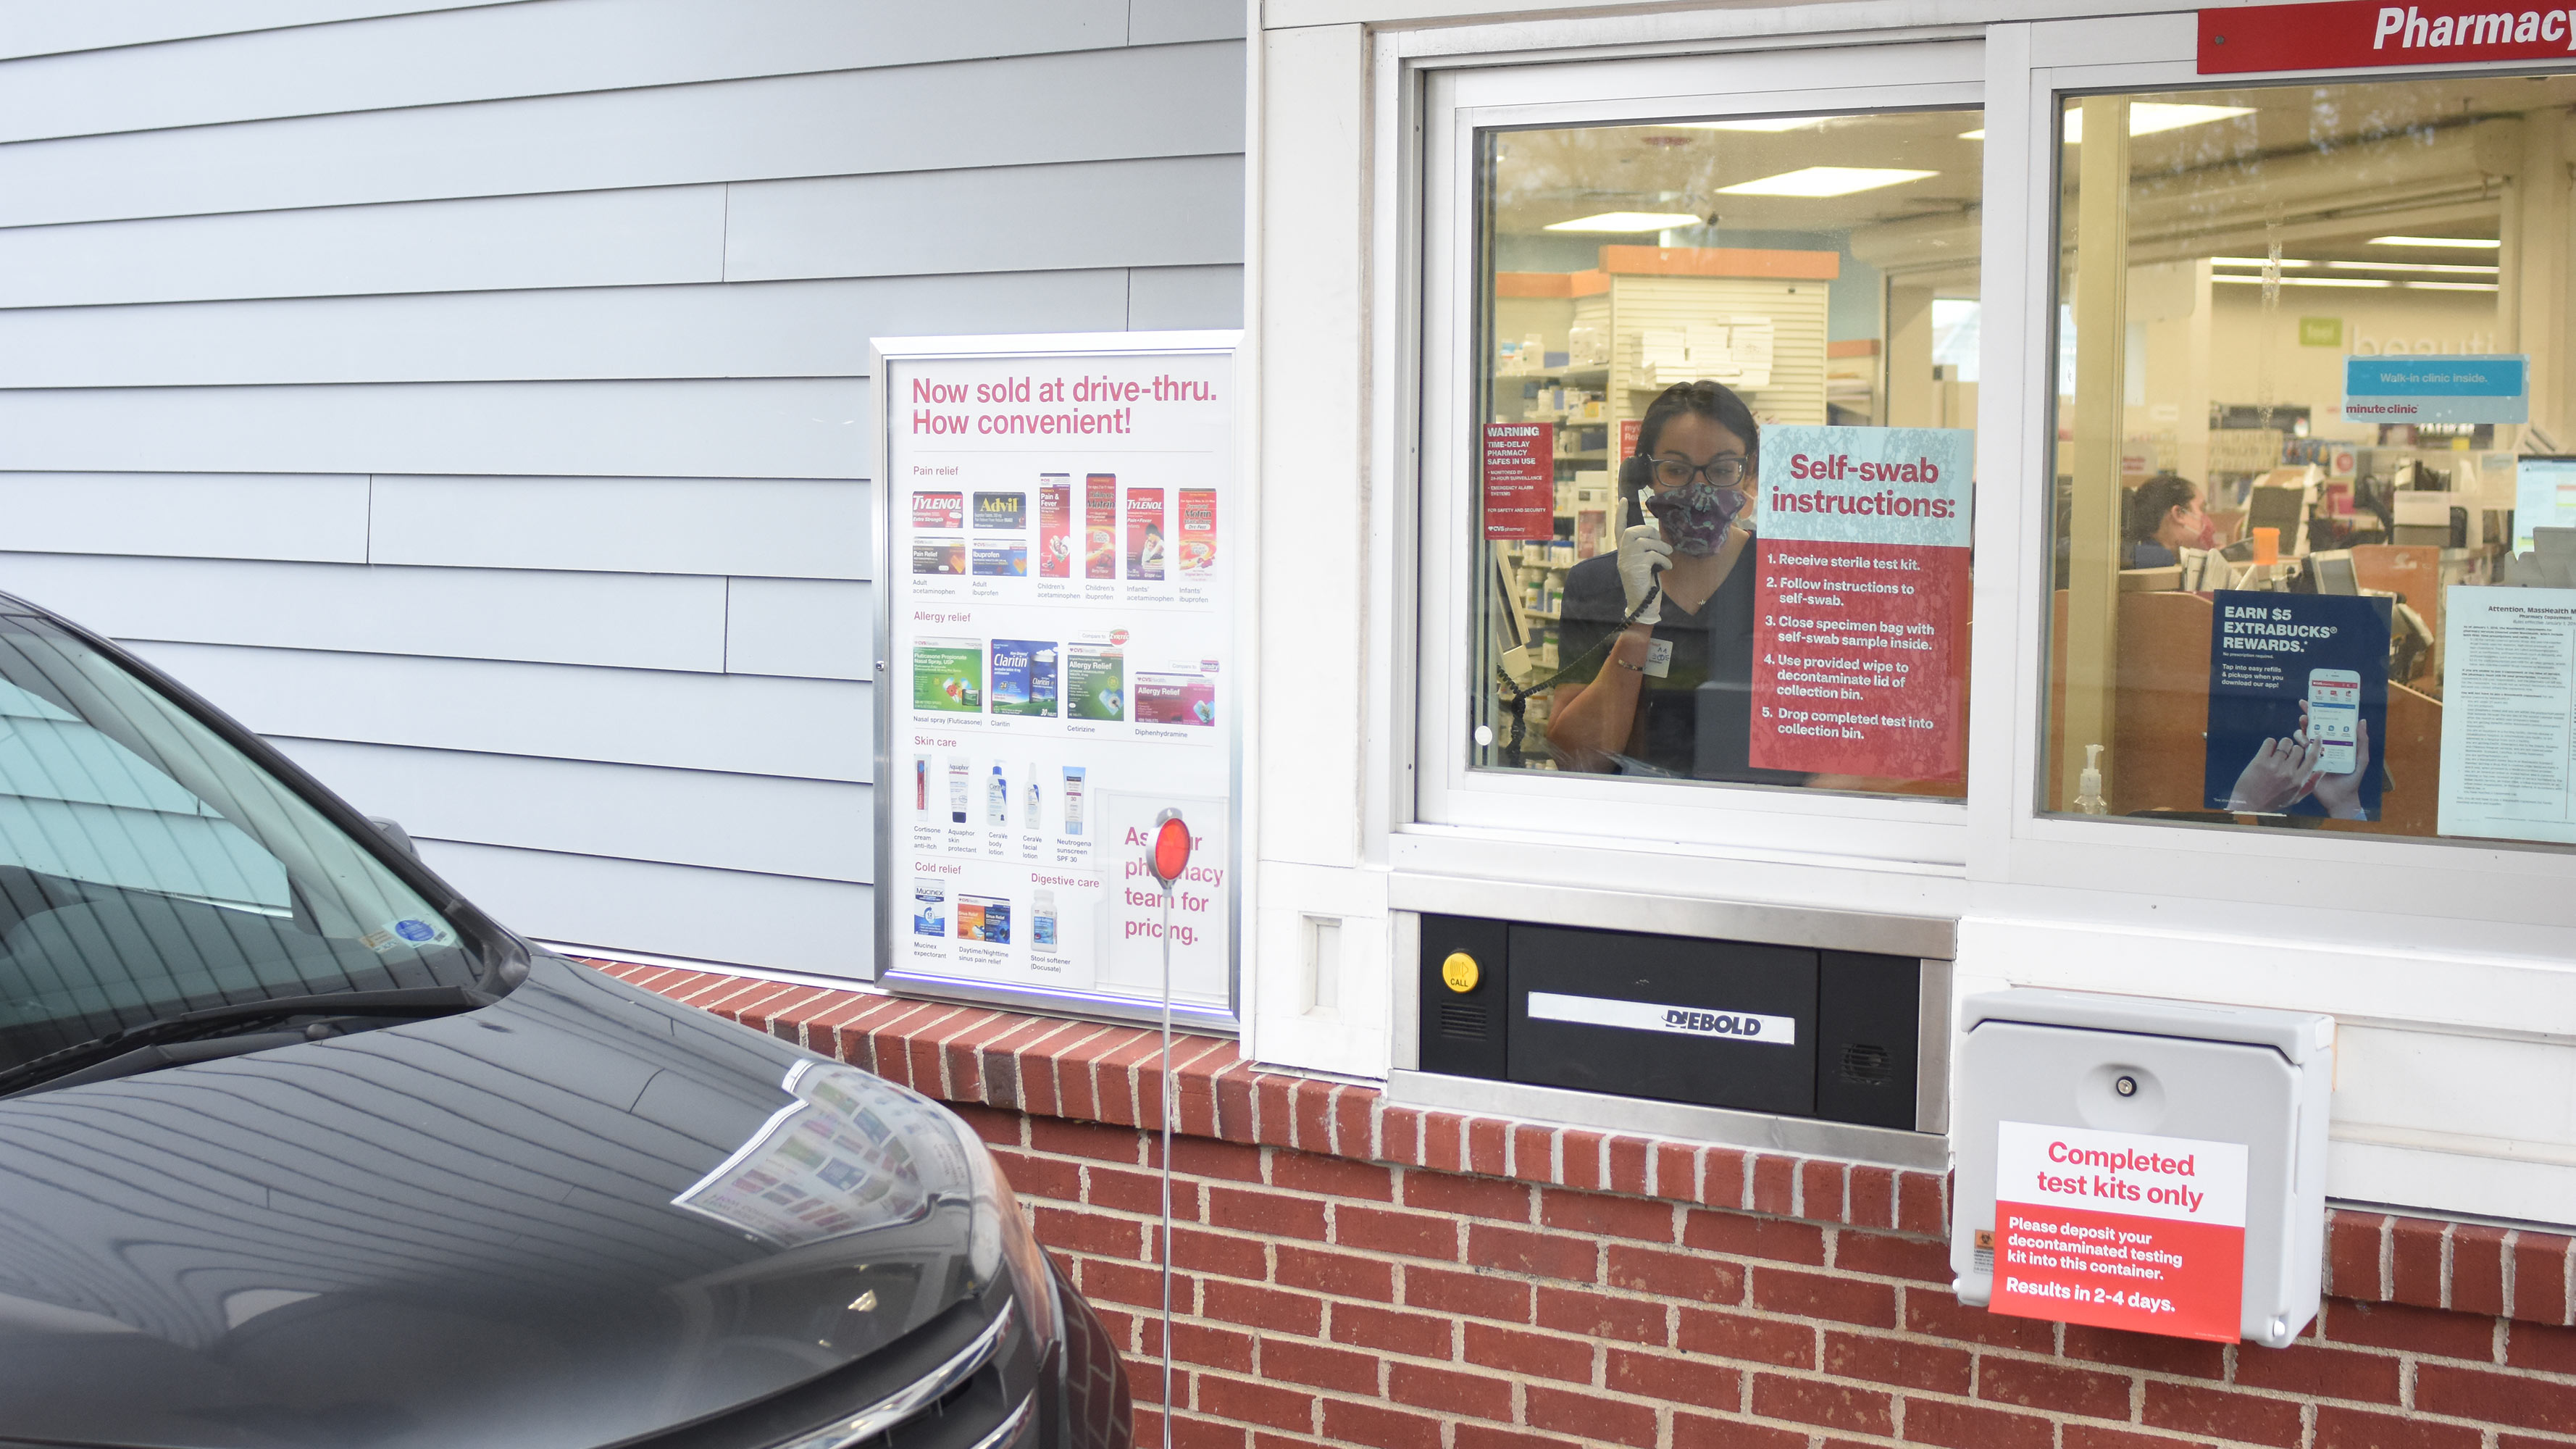 A CVS pharmacists speaks to a customer in the drive-thru at a CVS Pharmacy location.